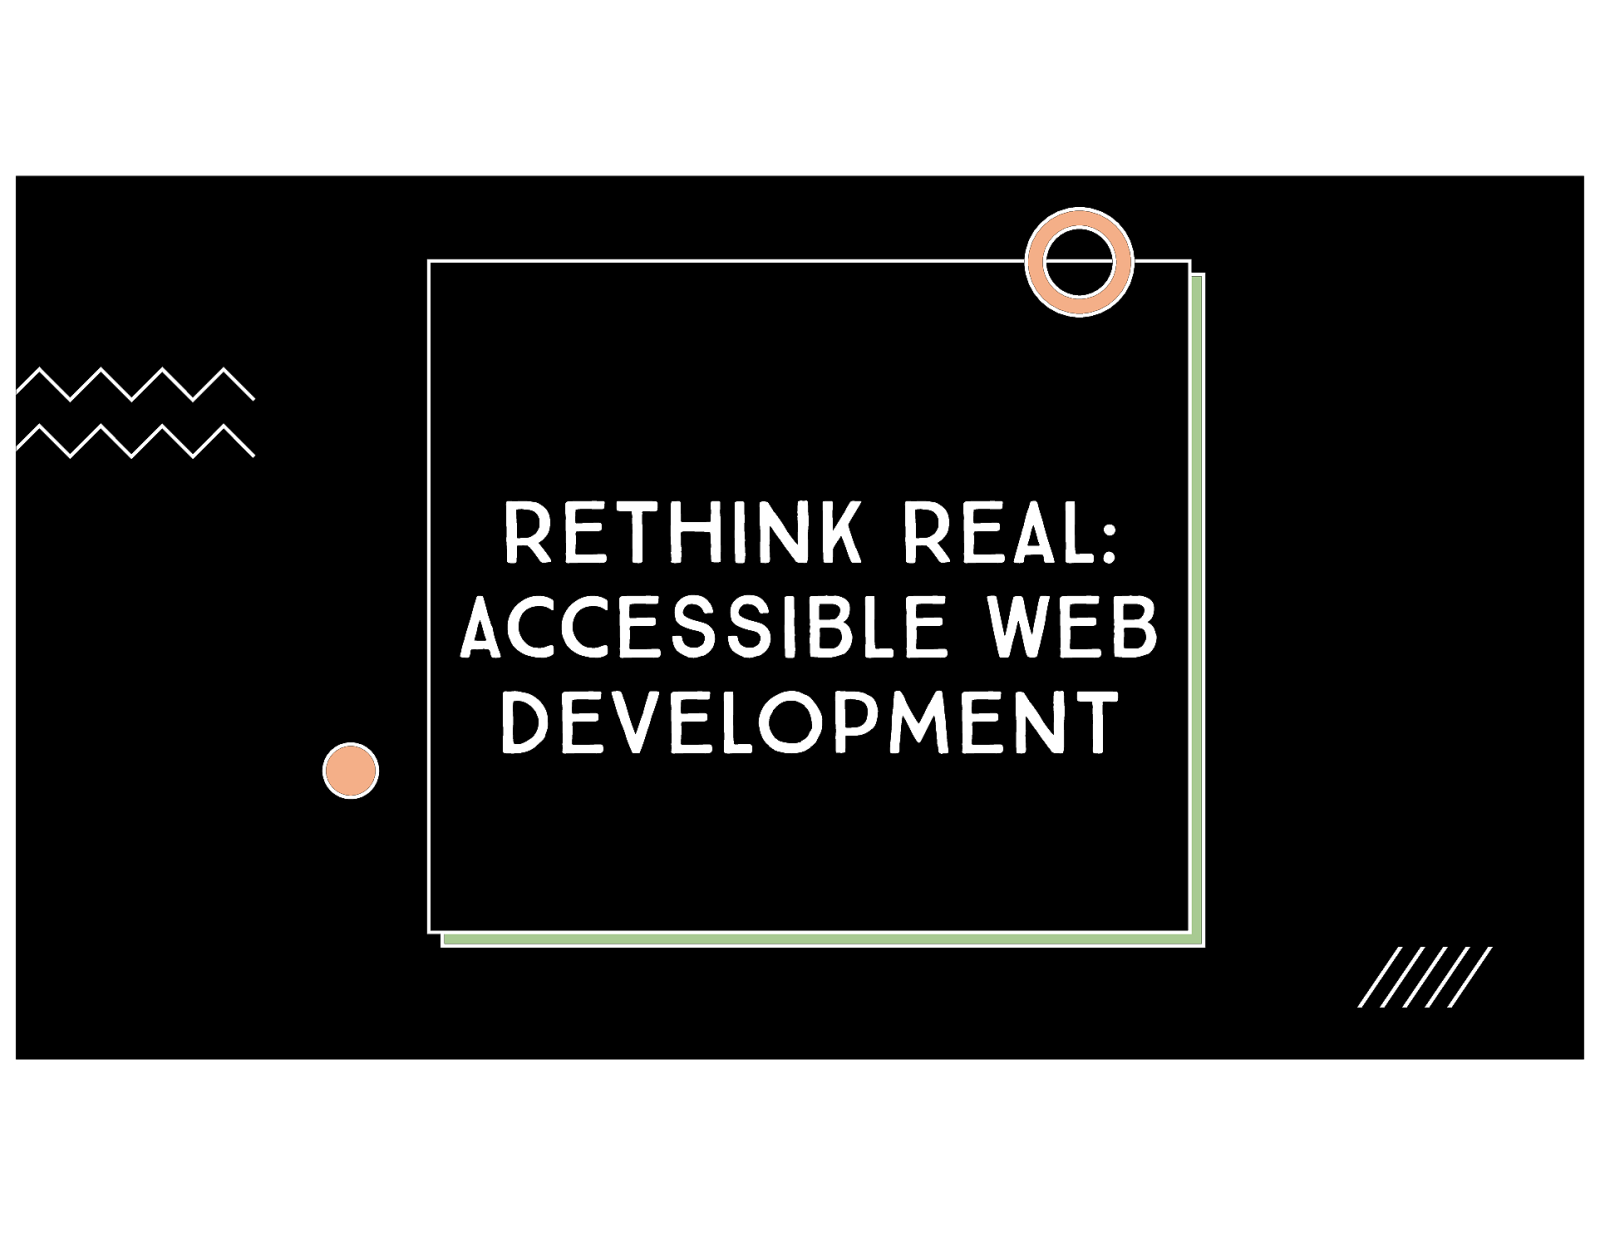 Rethink Real: Accessible Web Development by Melanie Sumner